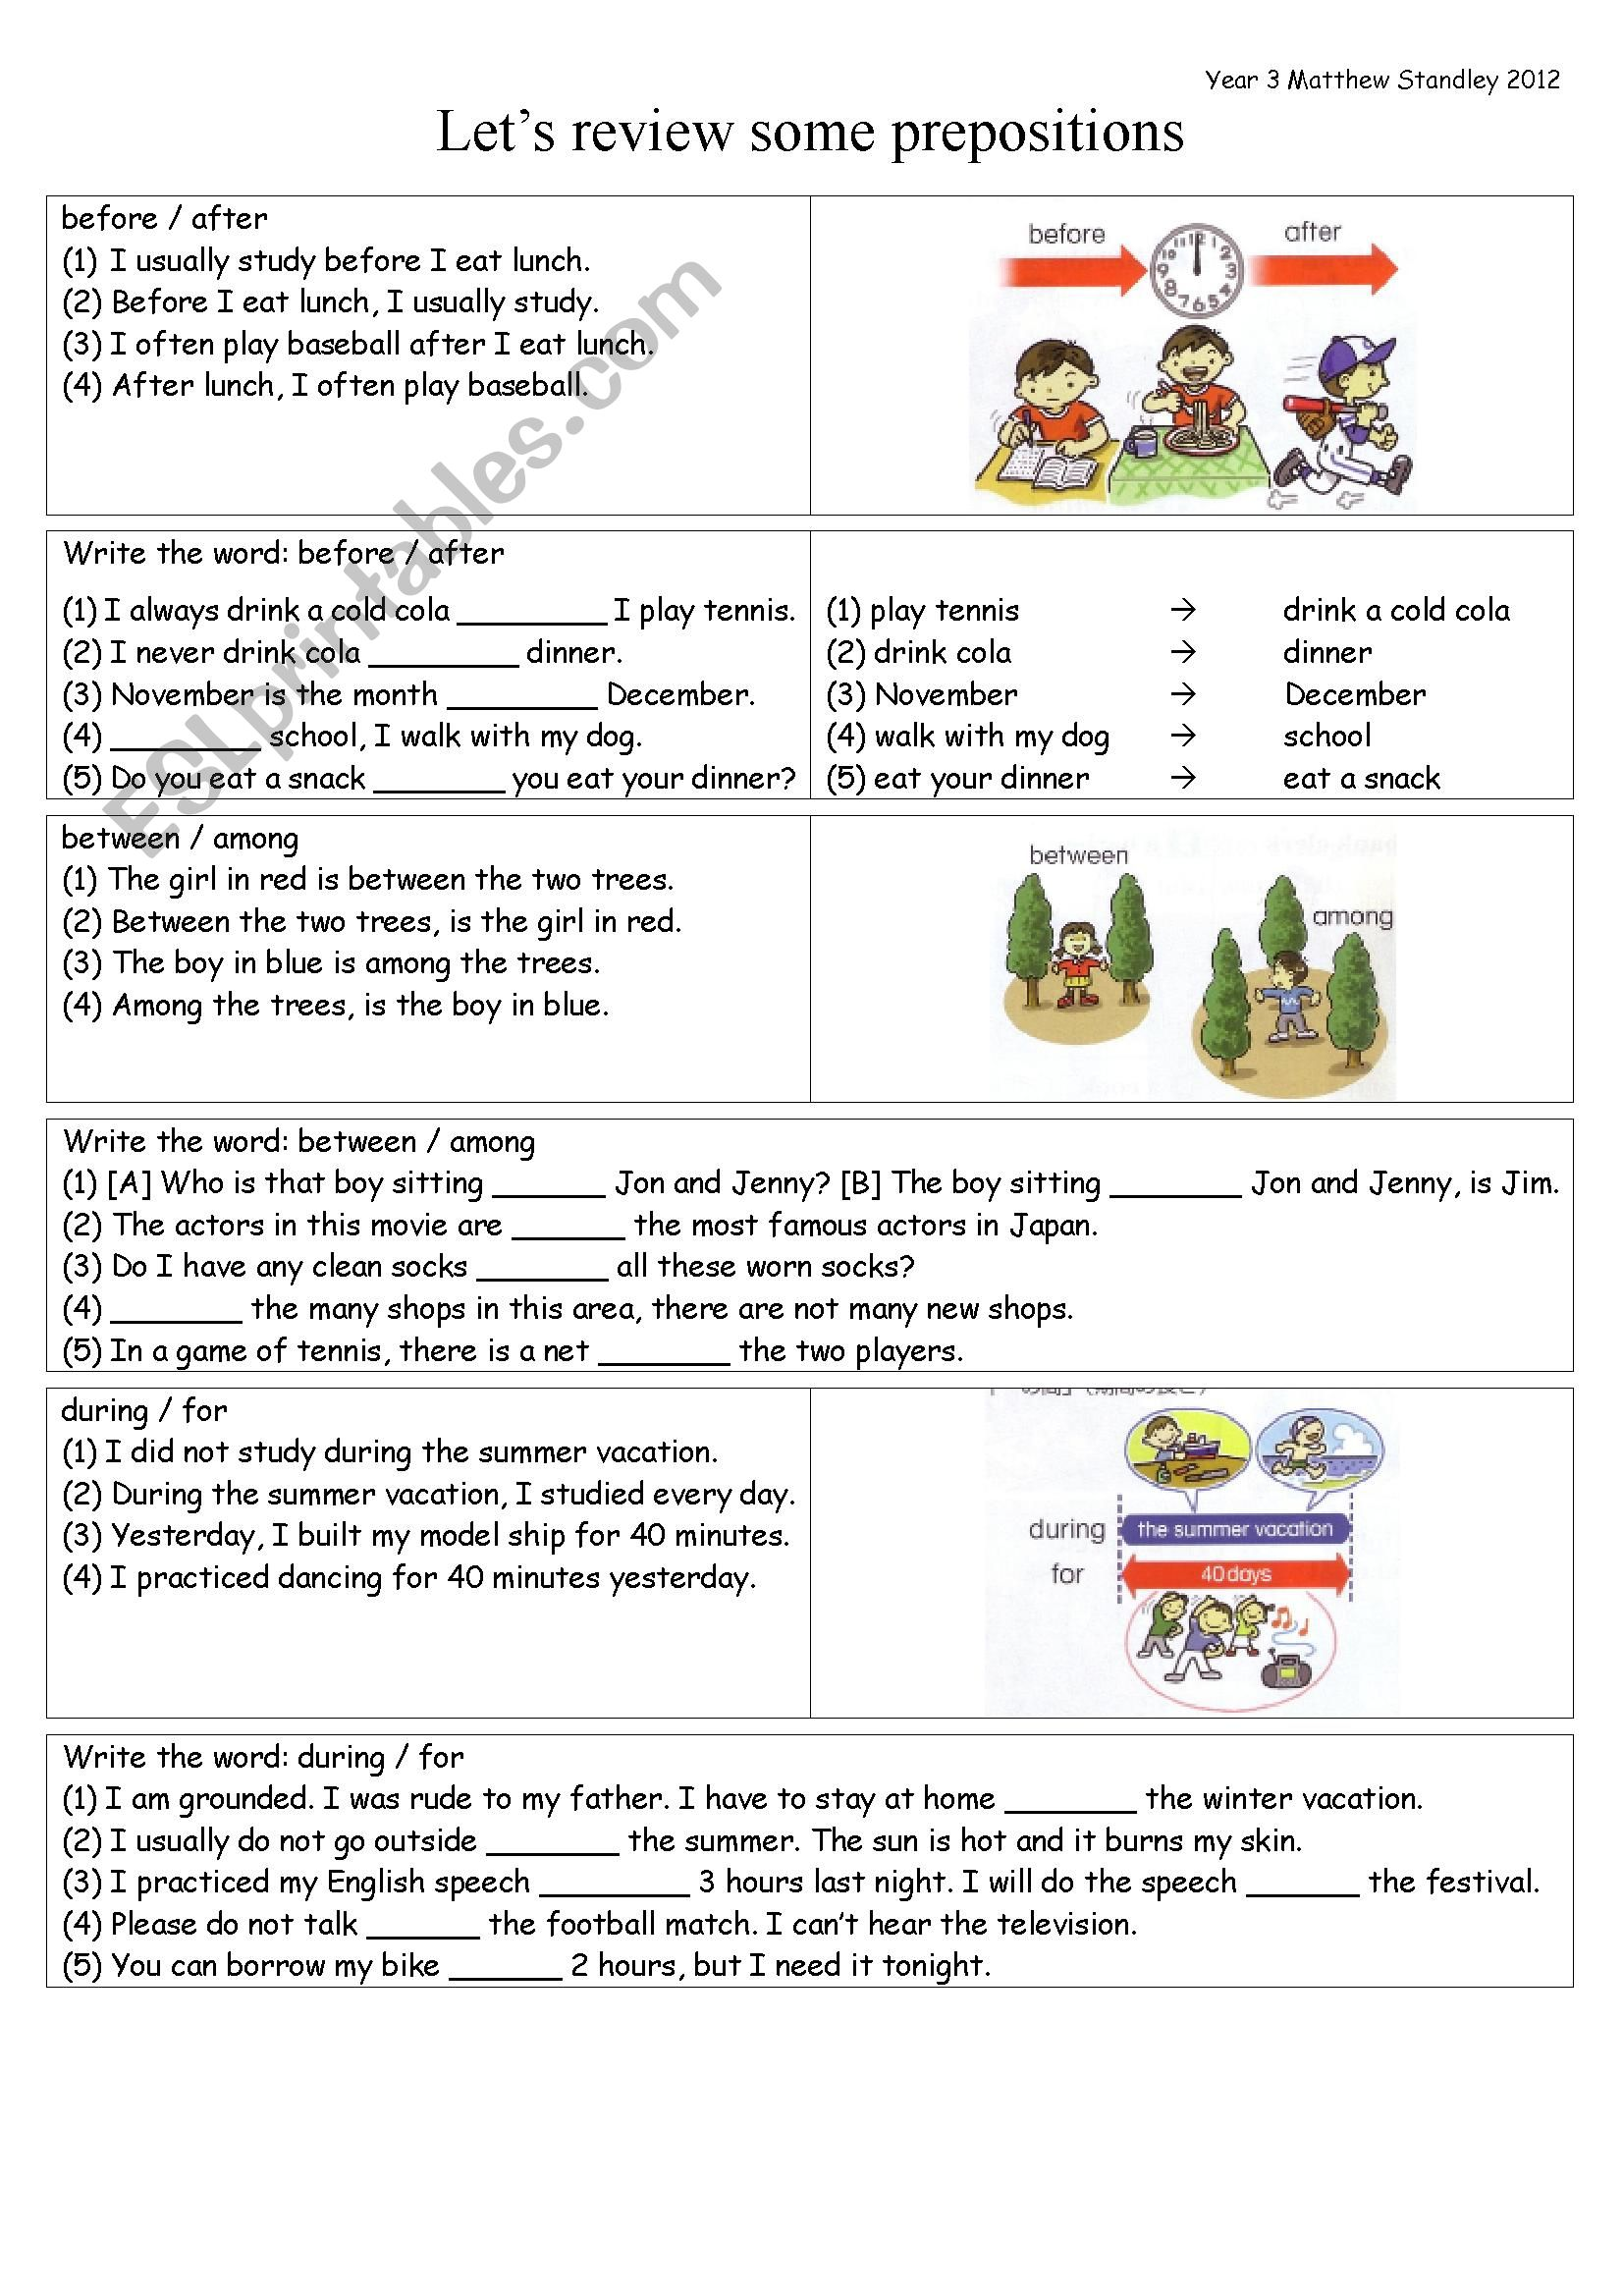 PREPOSITIONS review: before / after / between / among / during / for